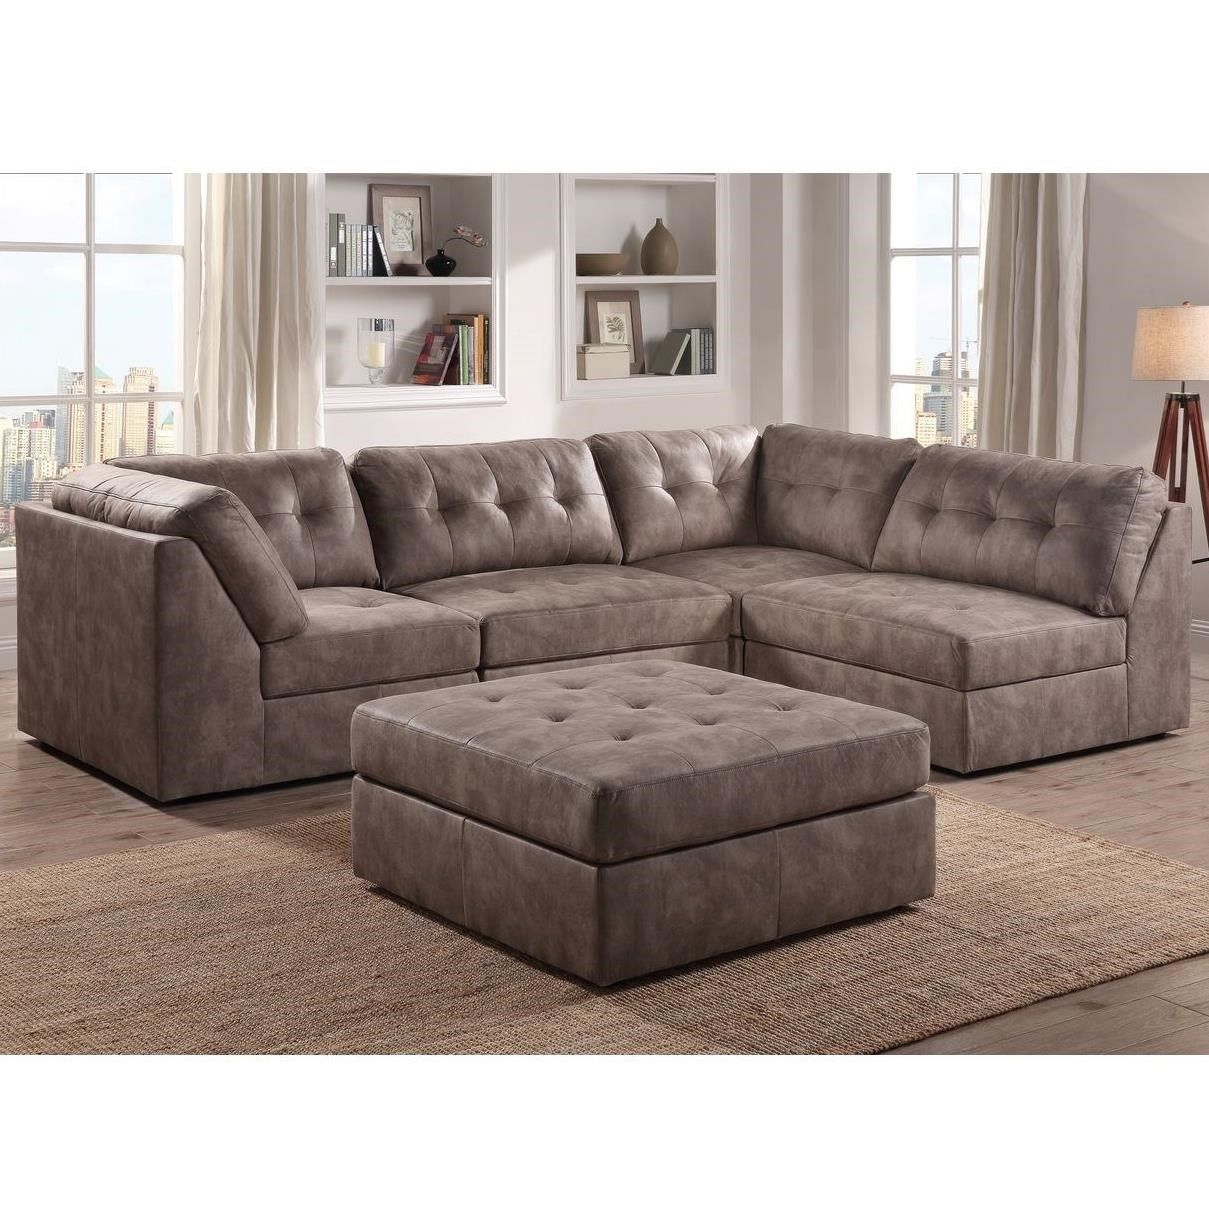 9377 Sectional Sofa By Lifestyle At Becker Furniture World